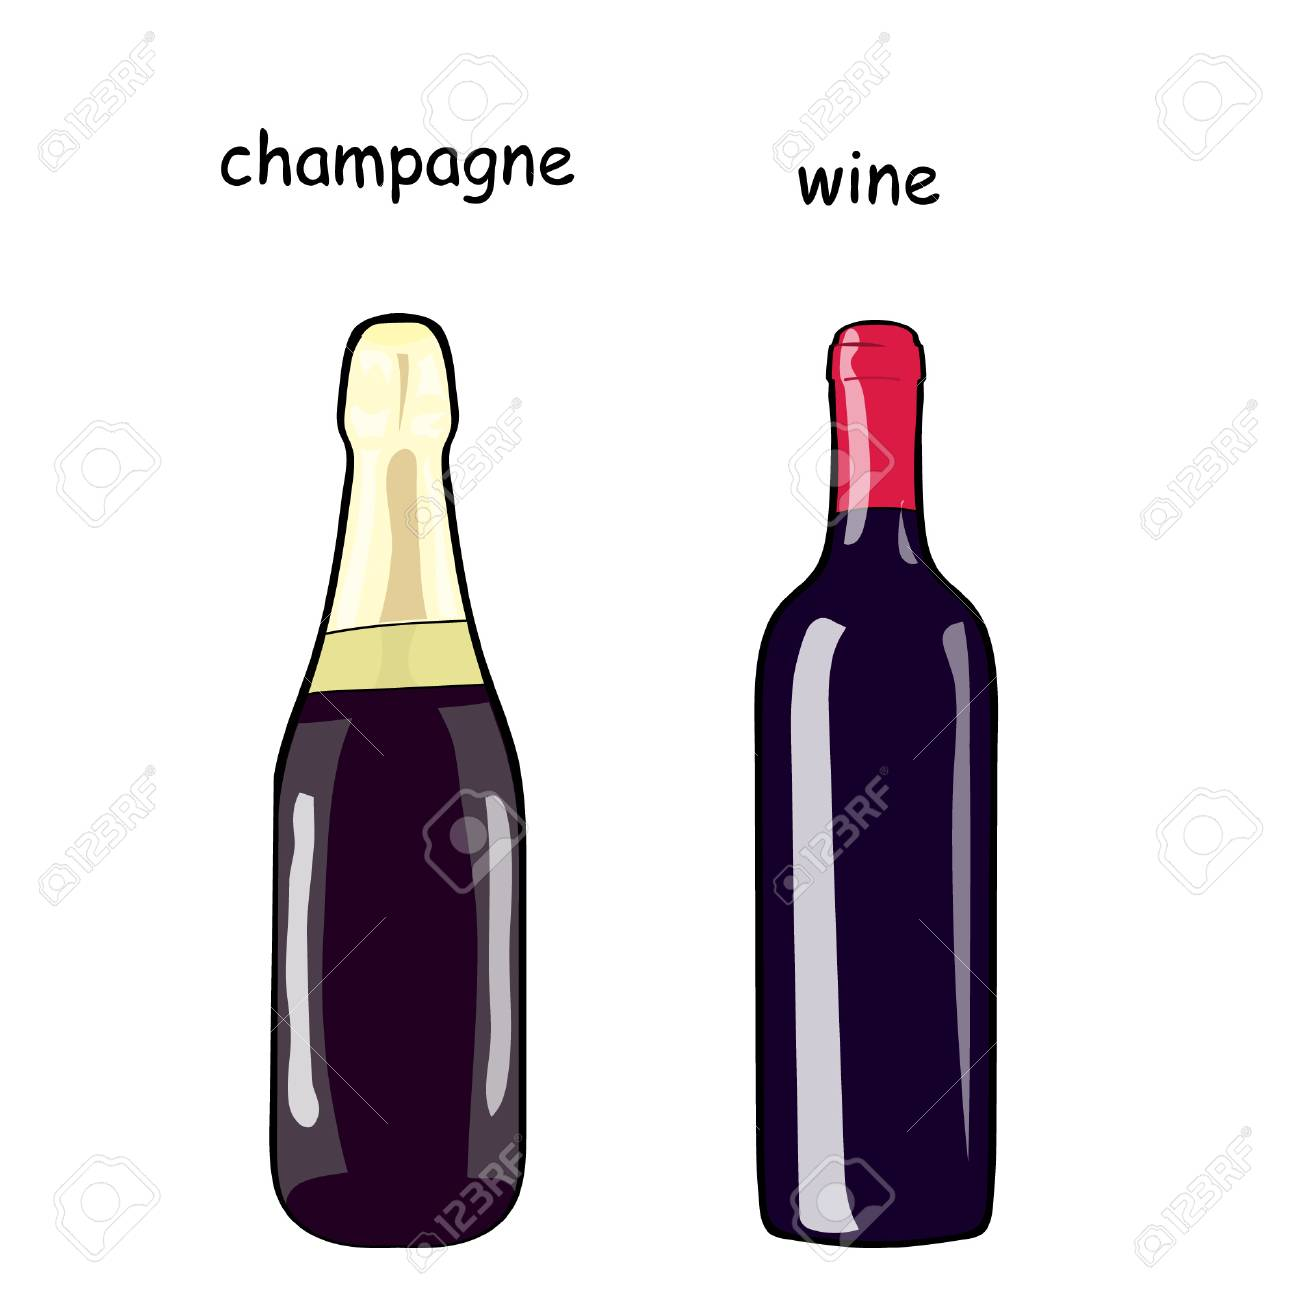 1300x1300 A Bottle Of Wine And A Bottle Of Champagne. Set Of Bottles